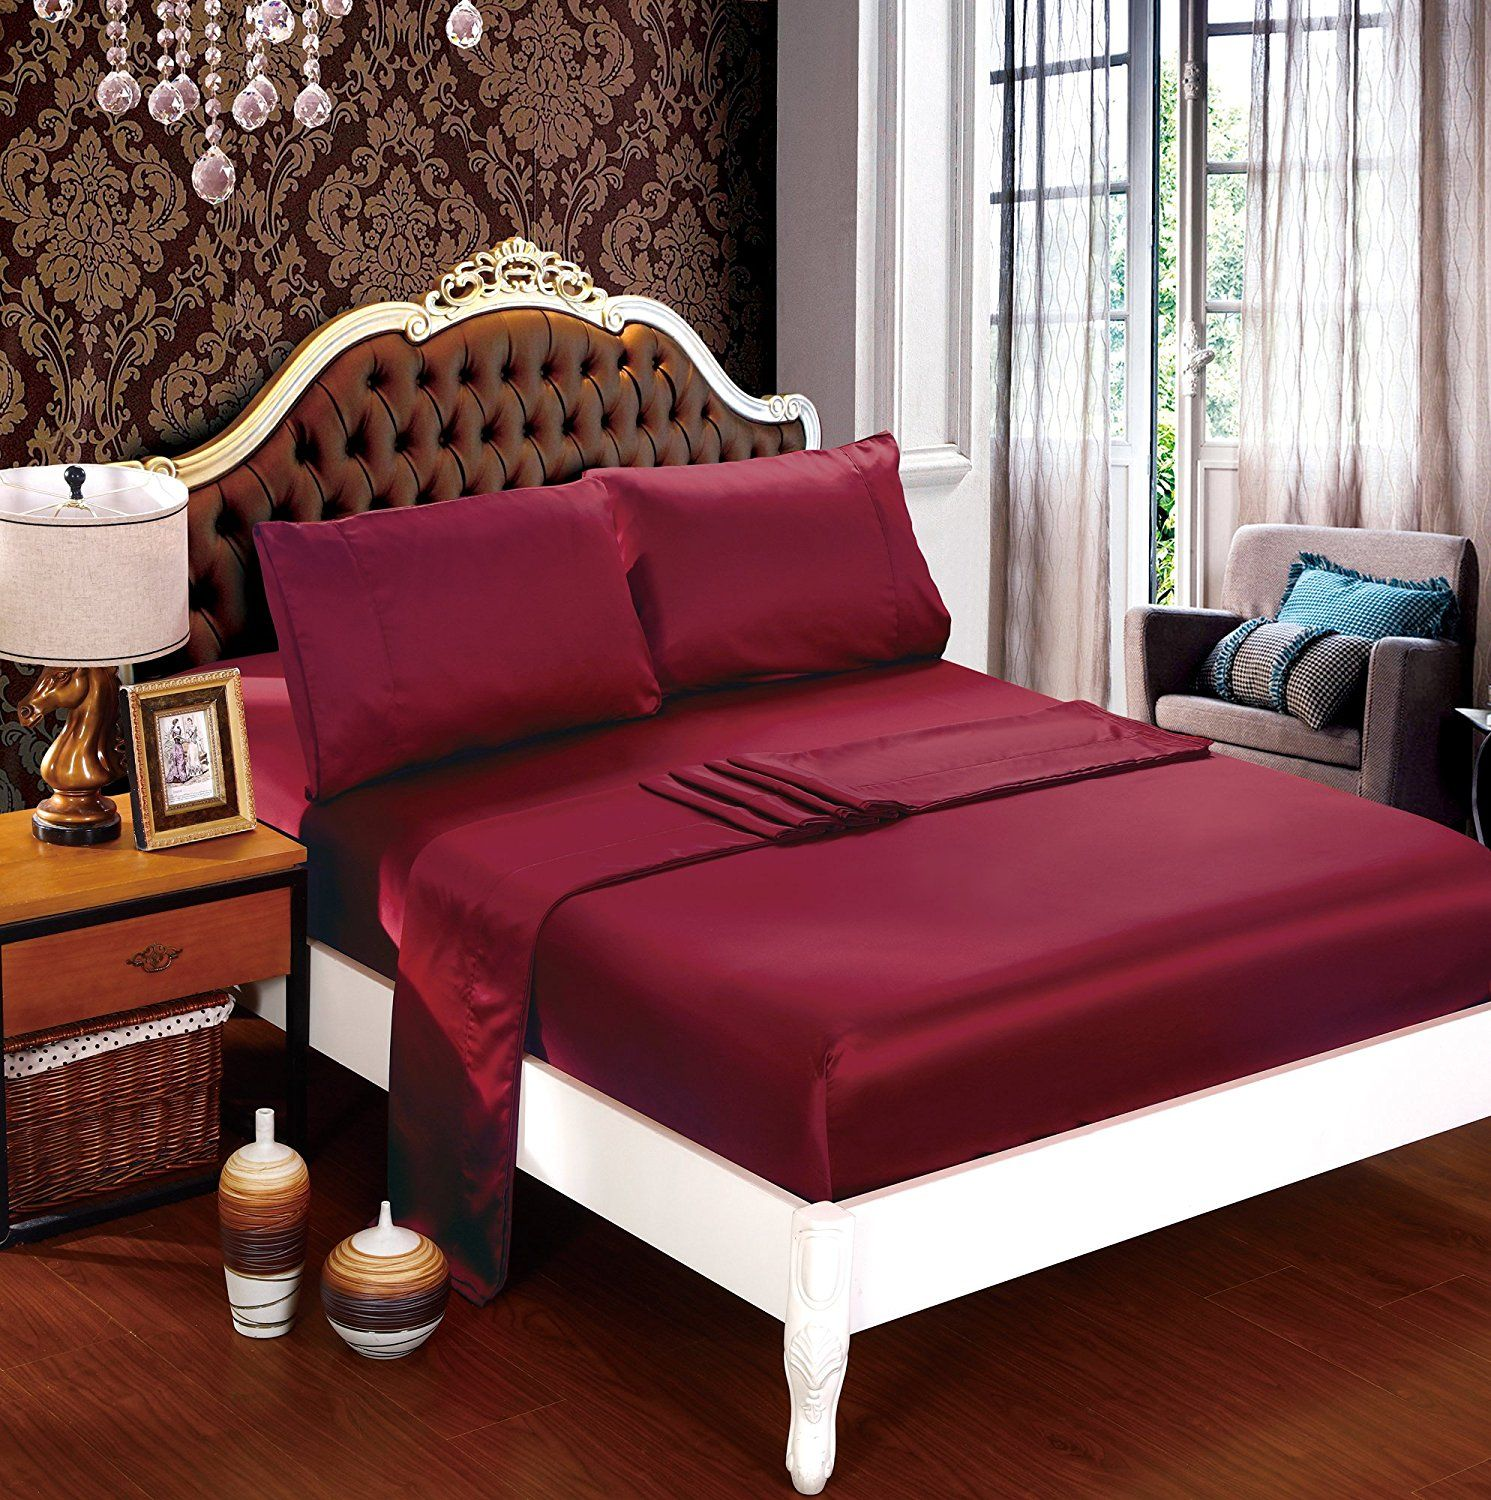 4db911d888cd DelbouTree Silky Soft Solid Matte-Satin Bed Sheet Sets Shiny-Free,Deep  Pocket Queen 4 Pieces, Burgundy